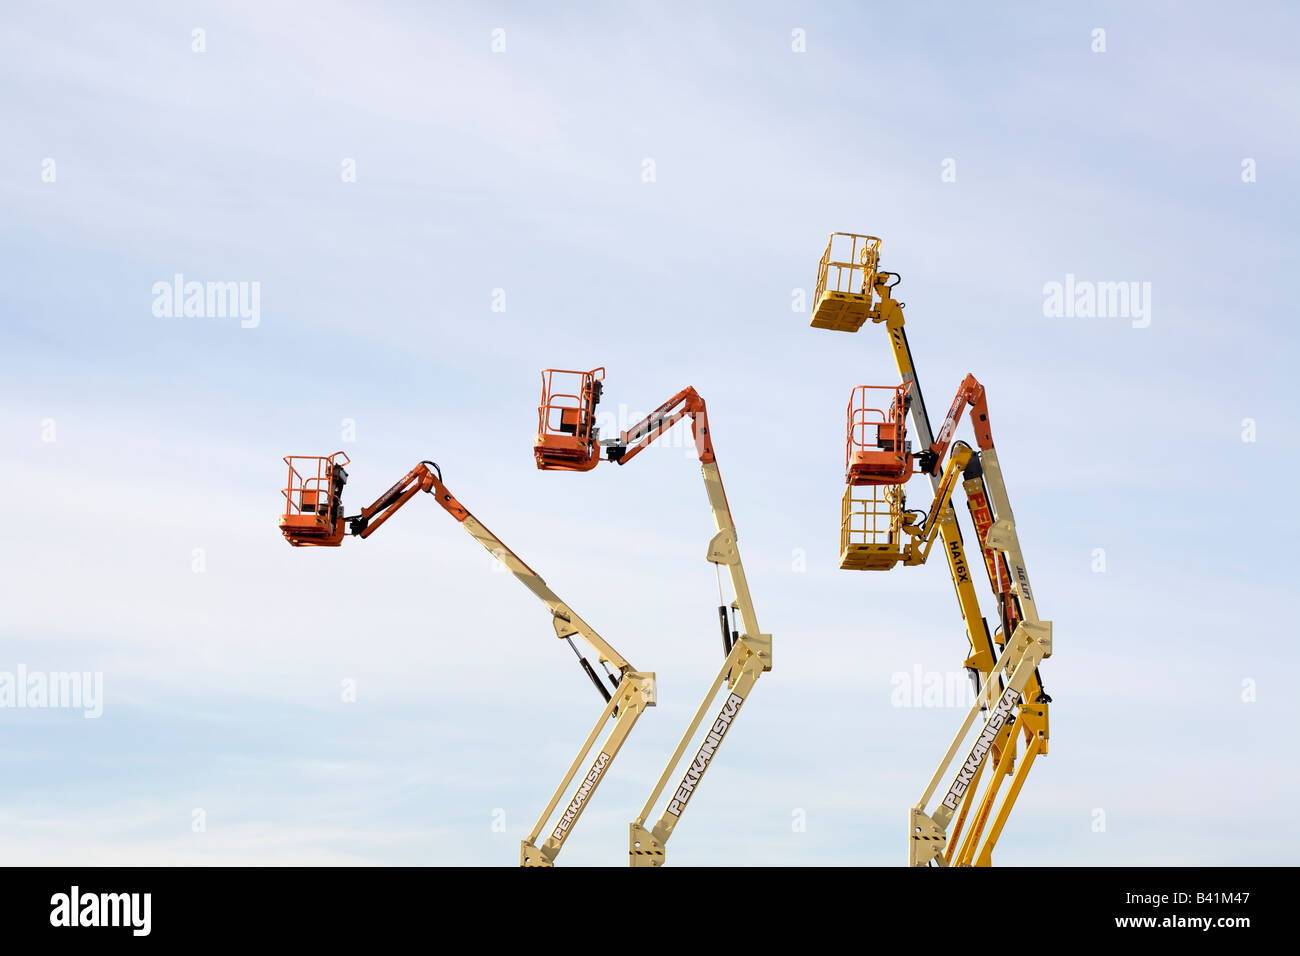 5 lift truck baskets up in the air - Stock Image